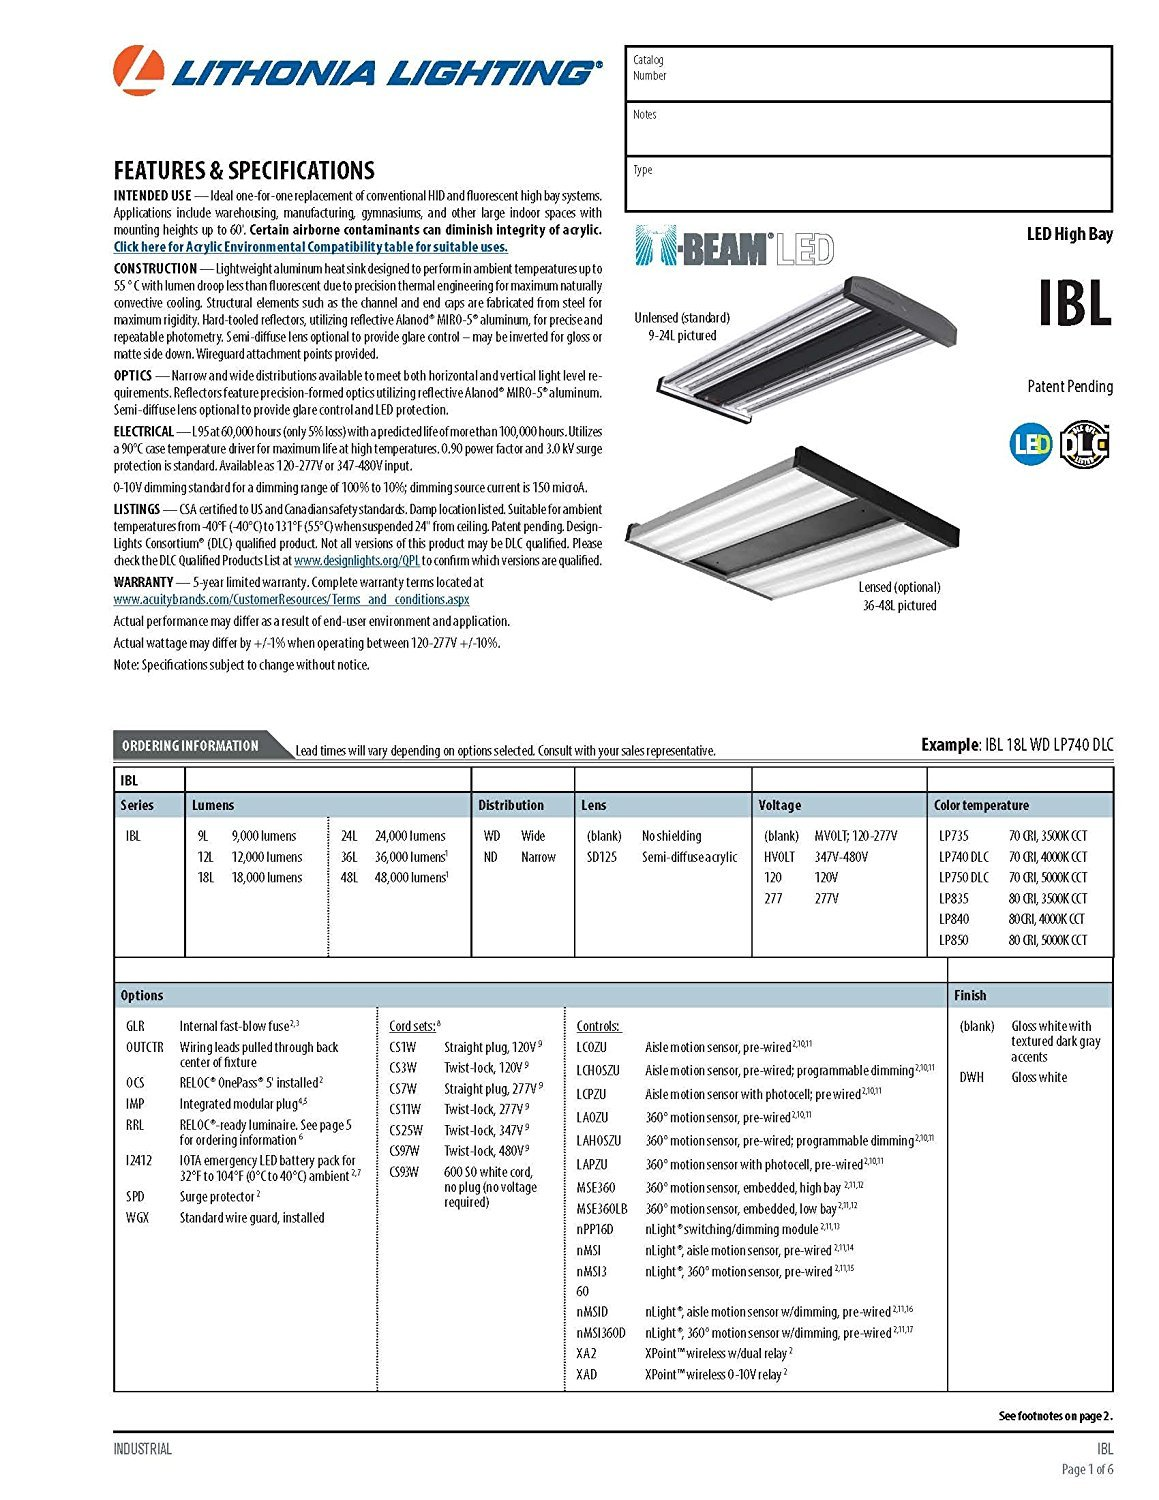 Buy Lithonia Lighting Ibl 24l Wd Lp740 Dlc Led Industrial High Bay Nlight Wiring Diagram 4 Feet Online At Low Prices In India